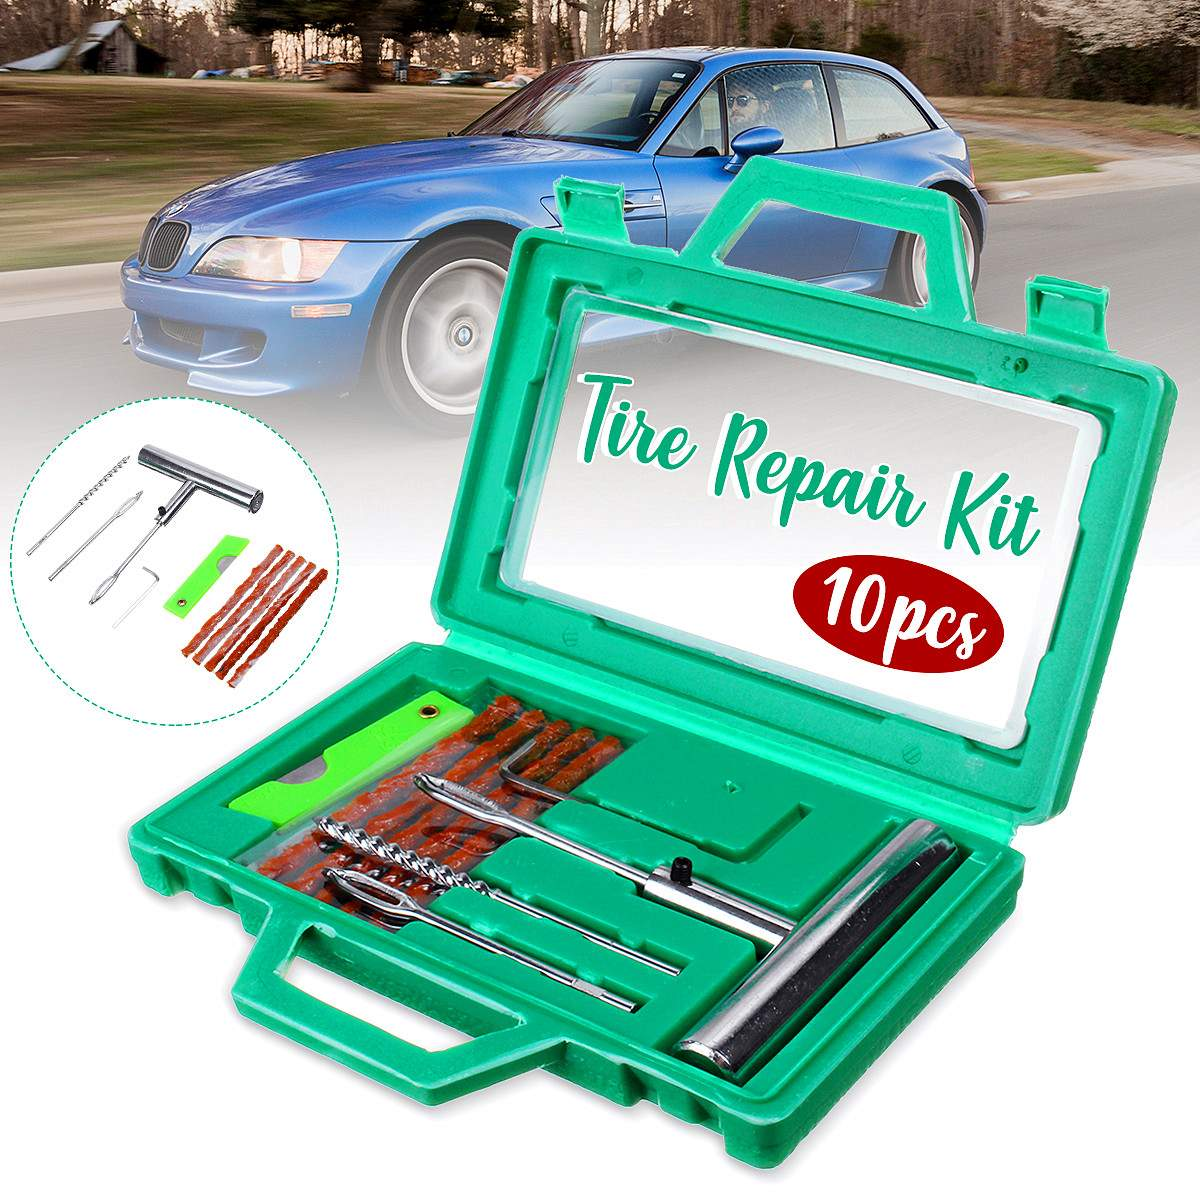 10Pcs Car Tire Repair Tools Kit Tire Repair Set Heavy Duty Tubeless Auto Motorcycle E Bike Tire Repair Tool Set Car Accessories